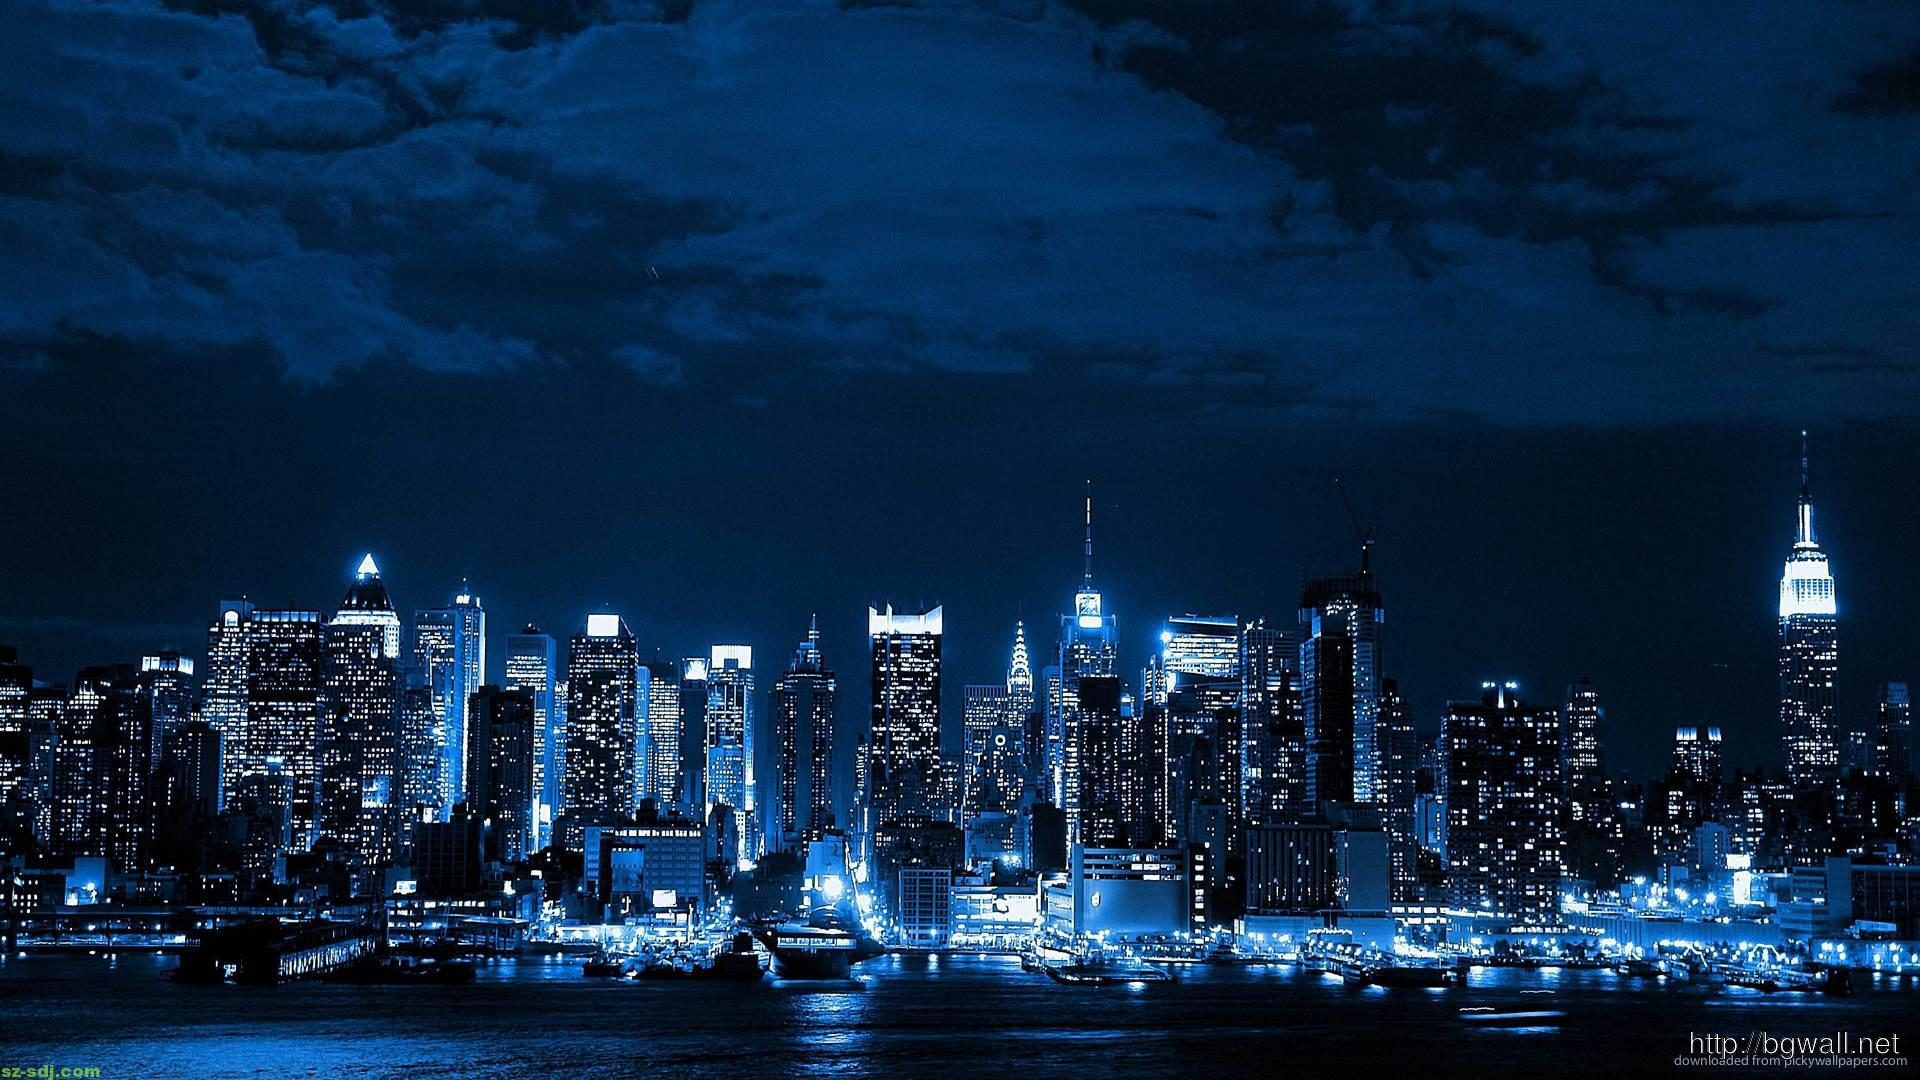 Blue Night City Wallpaper Picture